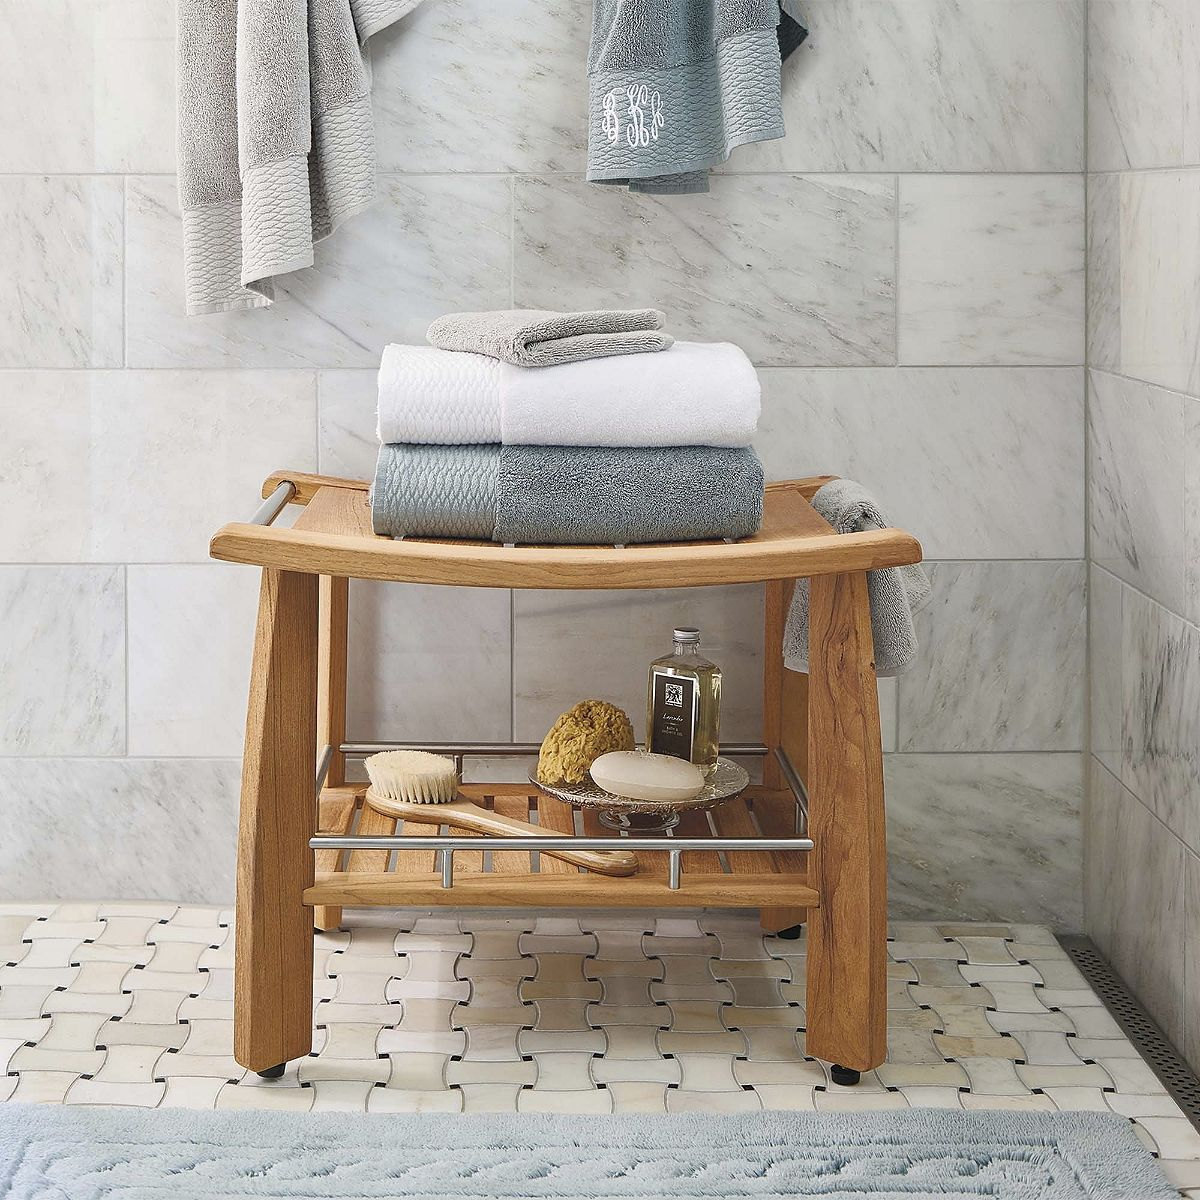 Designed by Frontgate, our Teak Shower Bench with Shelf combines ...